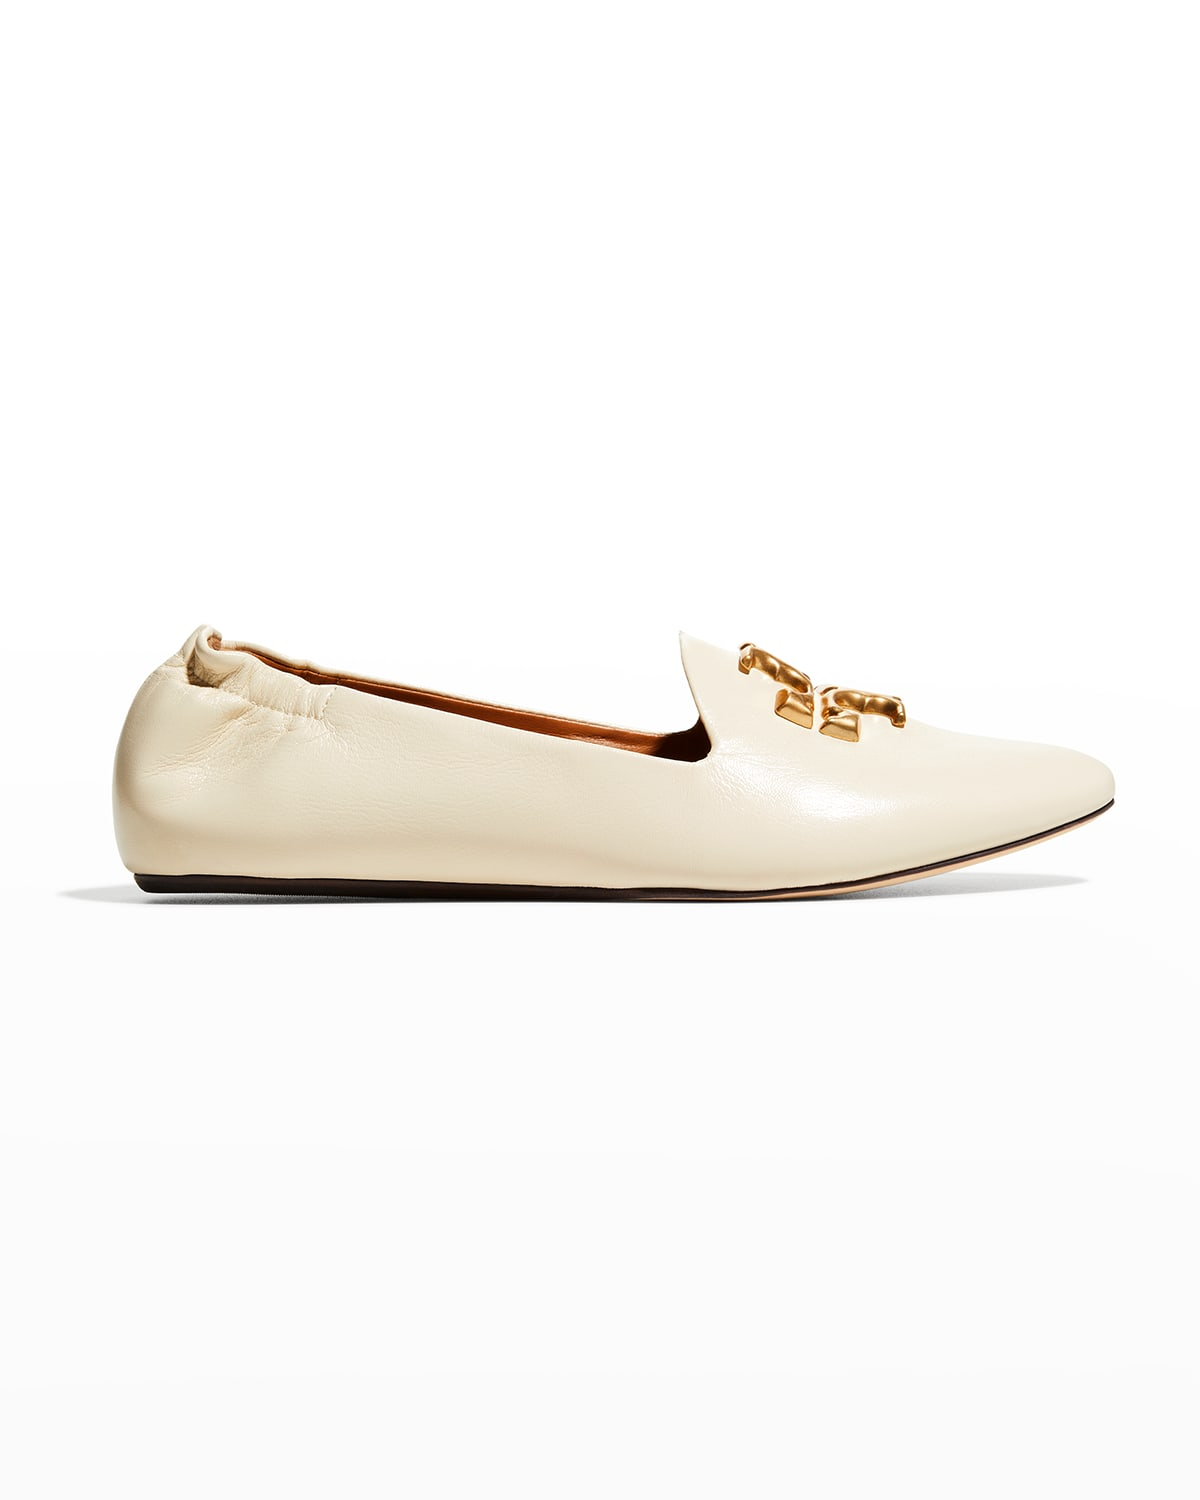 Eleanor Leather Medallion Loafers